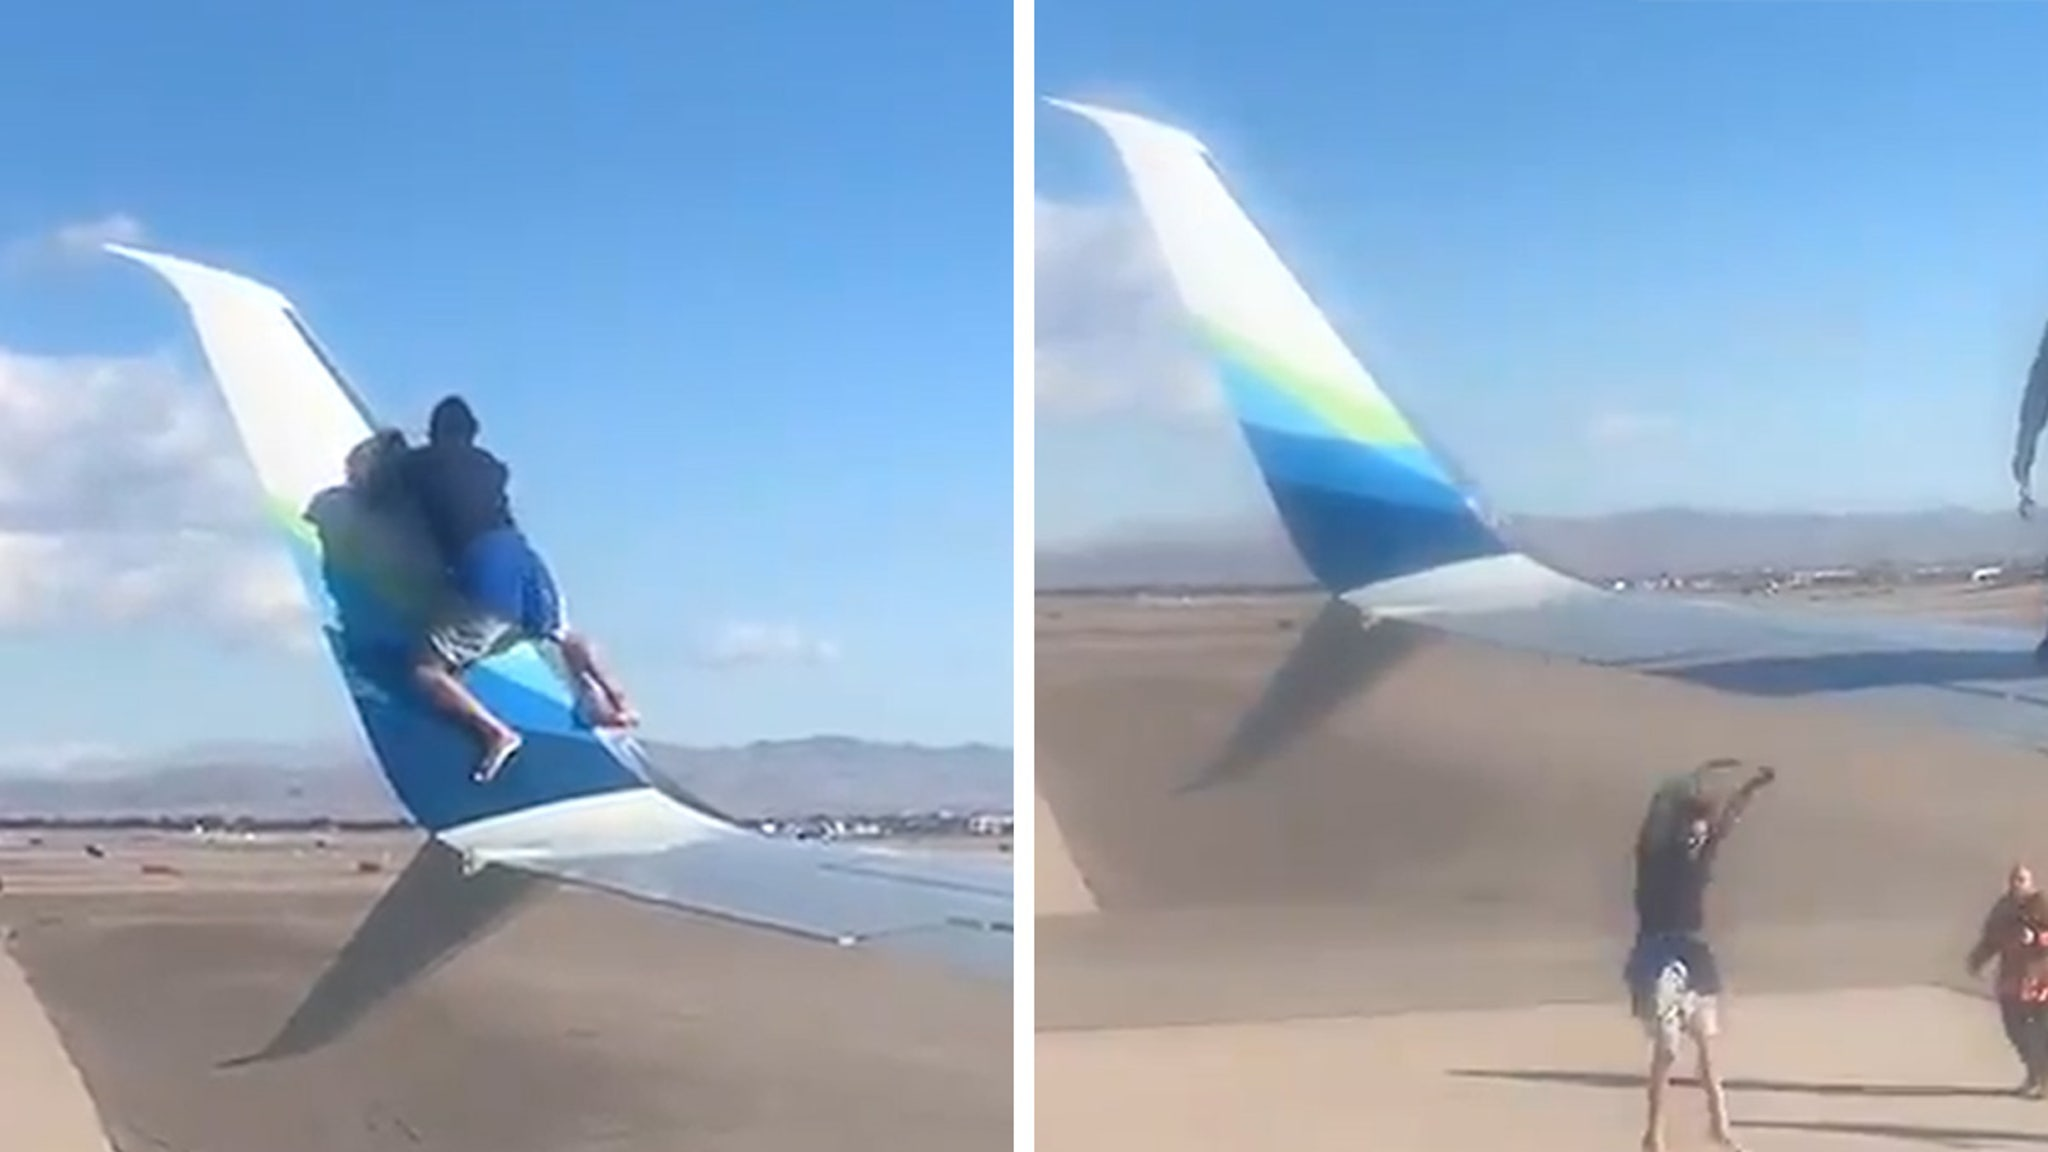 Vegas Man Arrested After Scaling Airplane Wing and Then Falling Off thumbnail